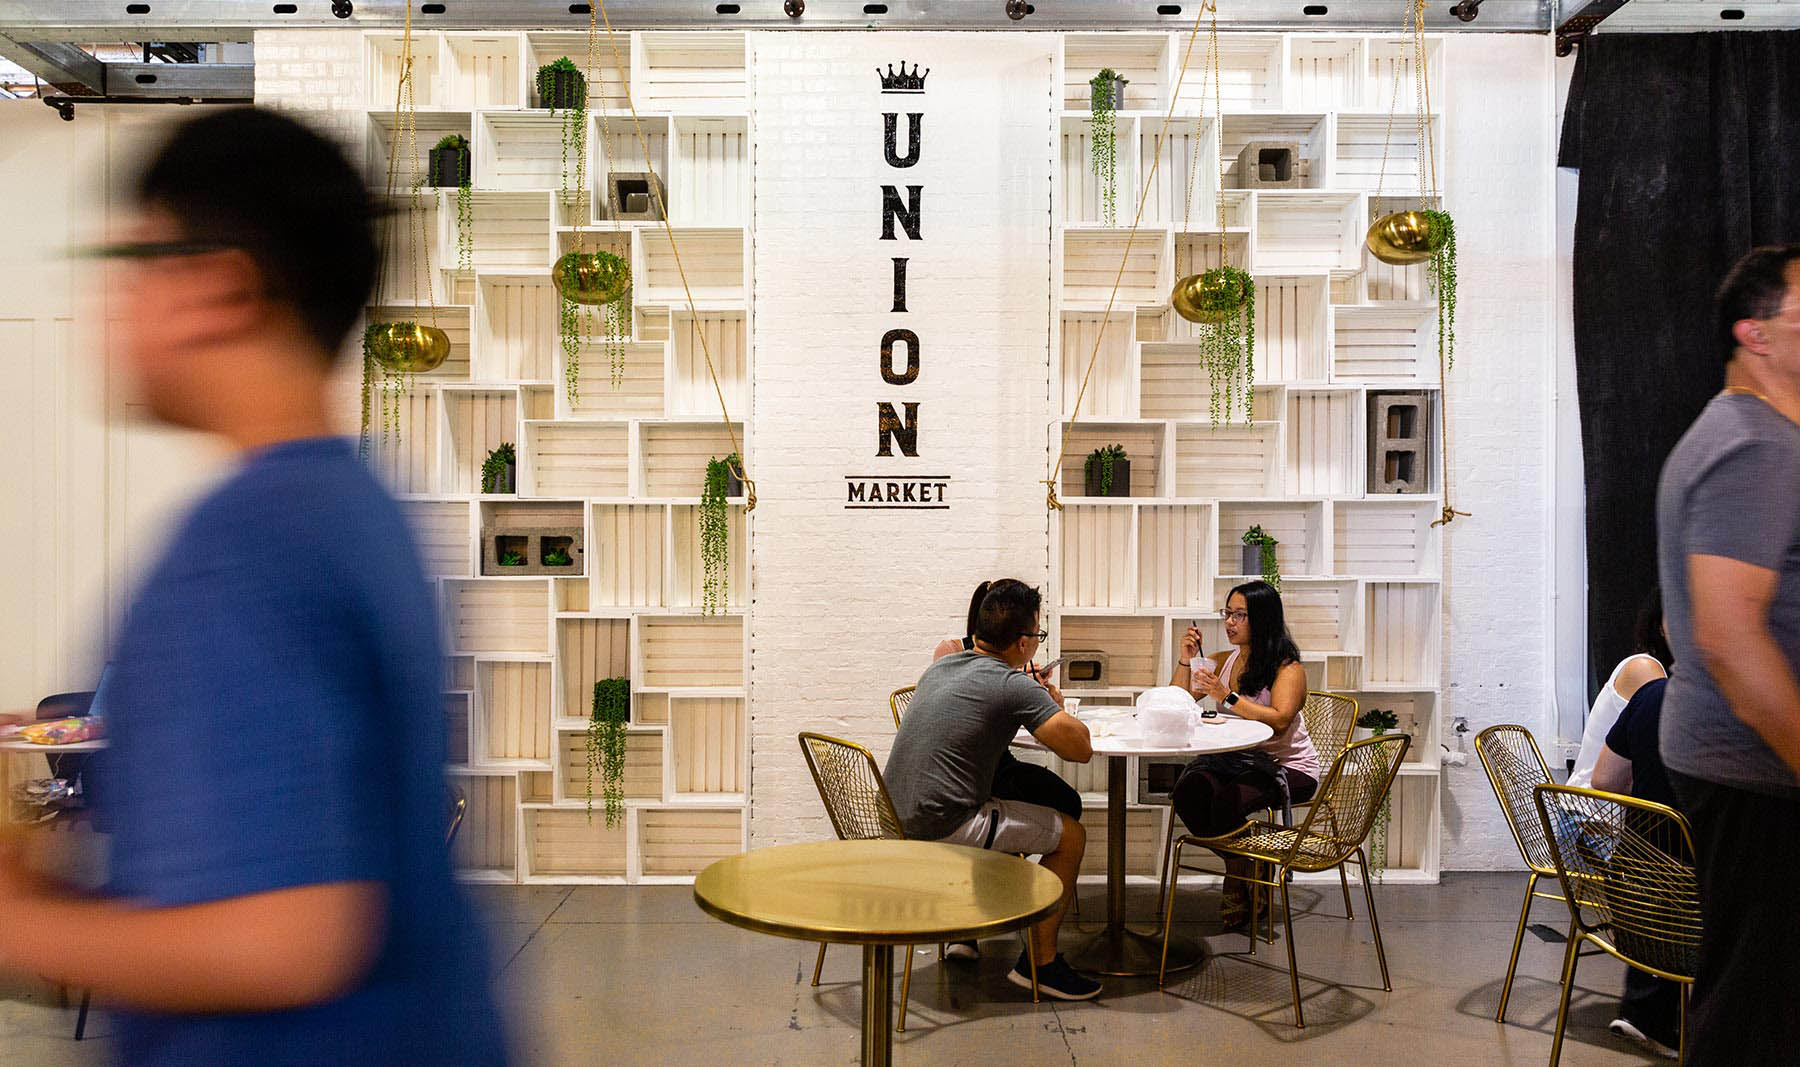 union market food and retail close to broadstone archive apartments in orange county